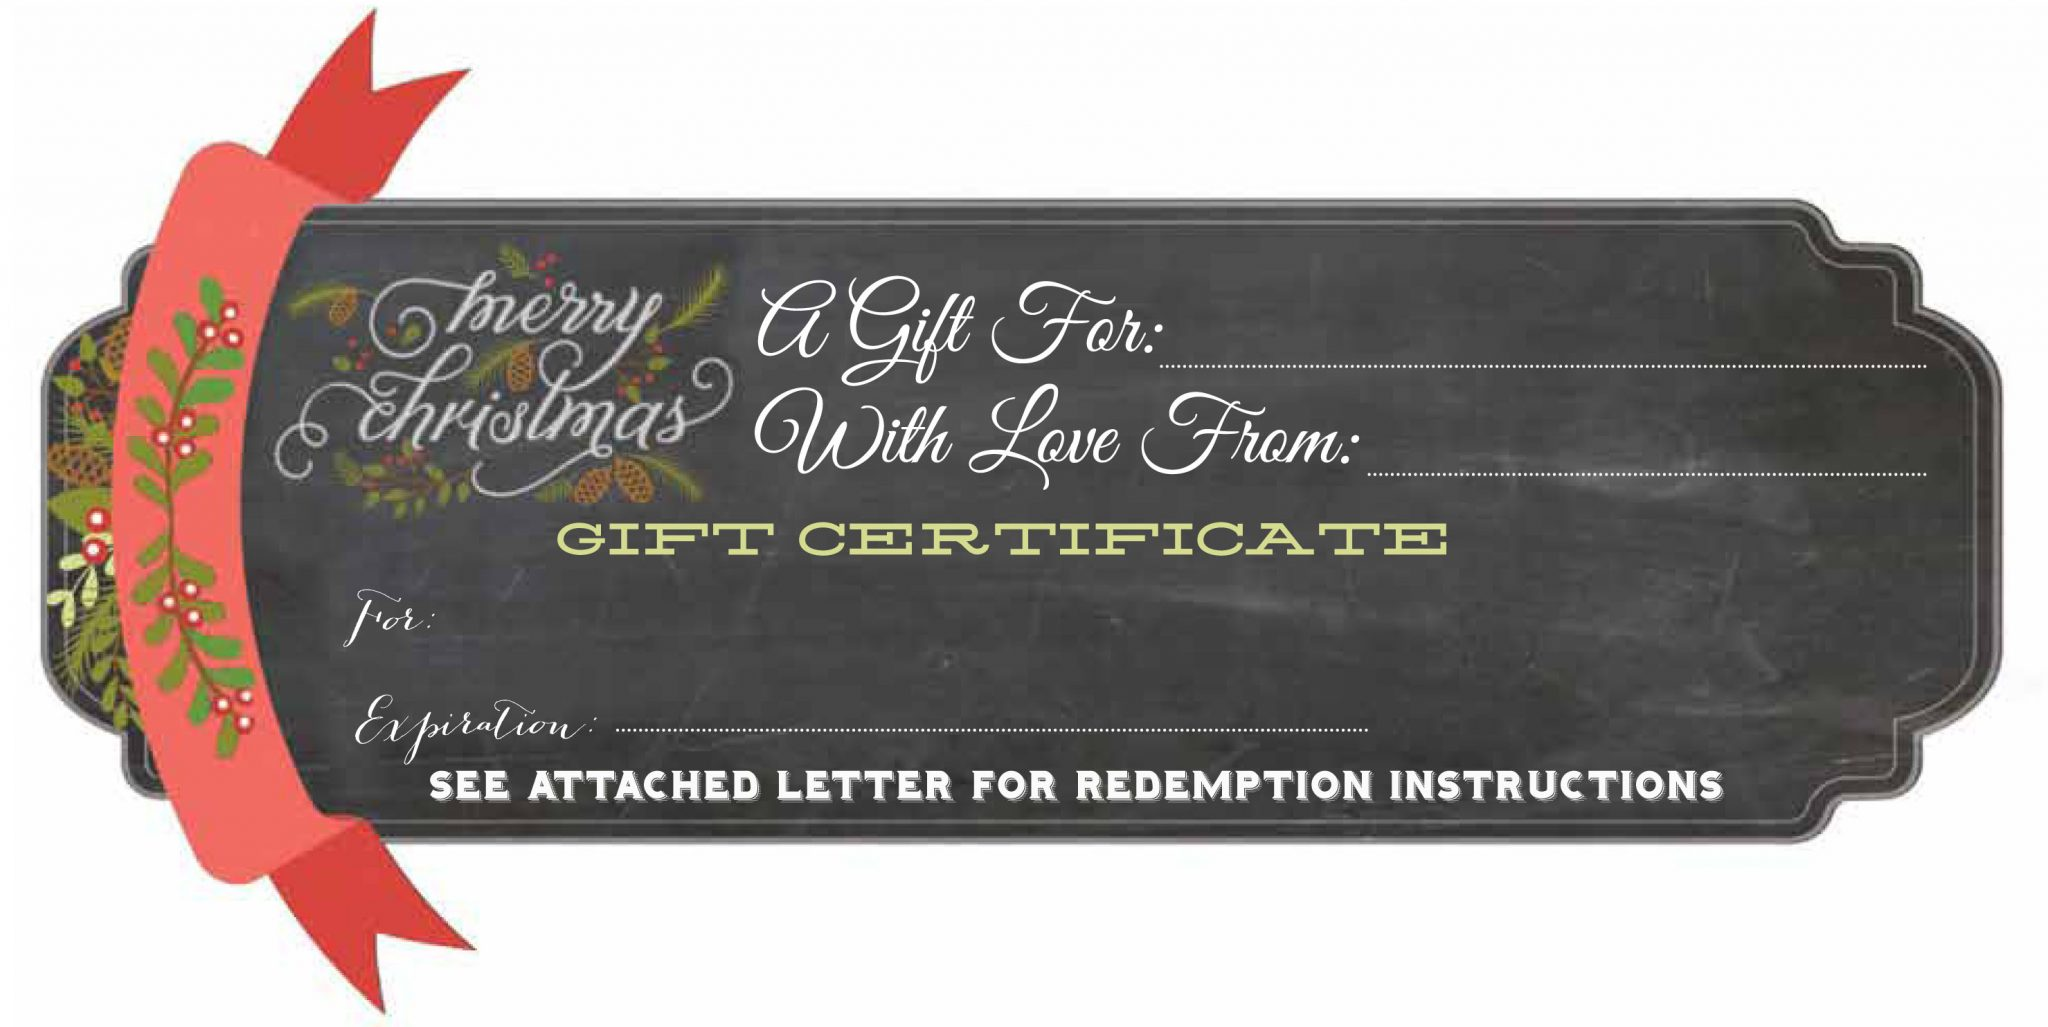 Free printable gift certificate moxiblog for Homemade christmas gift certificates templates